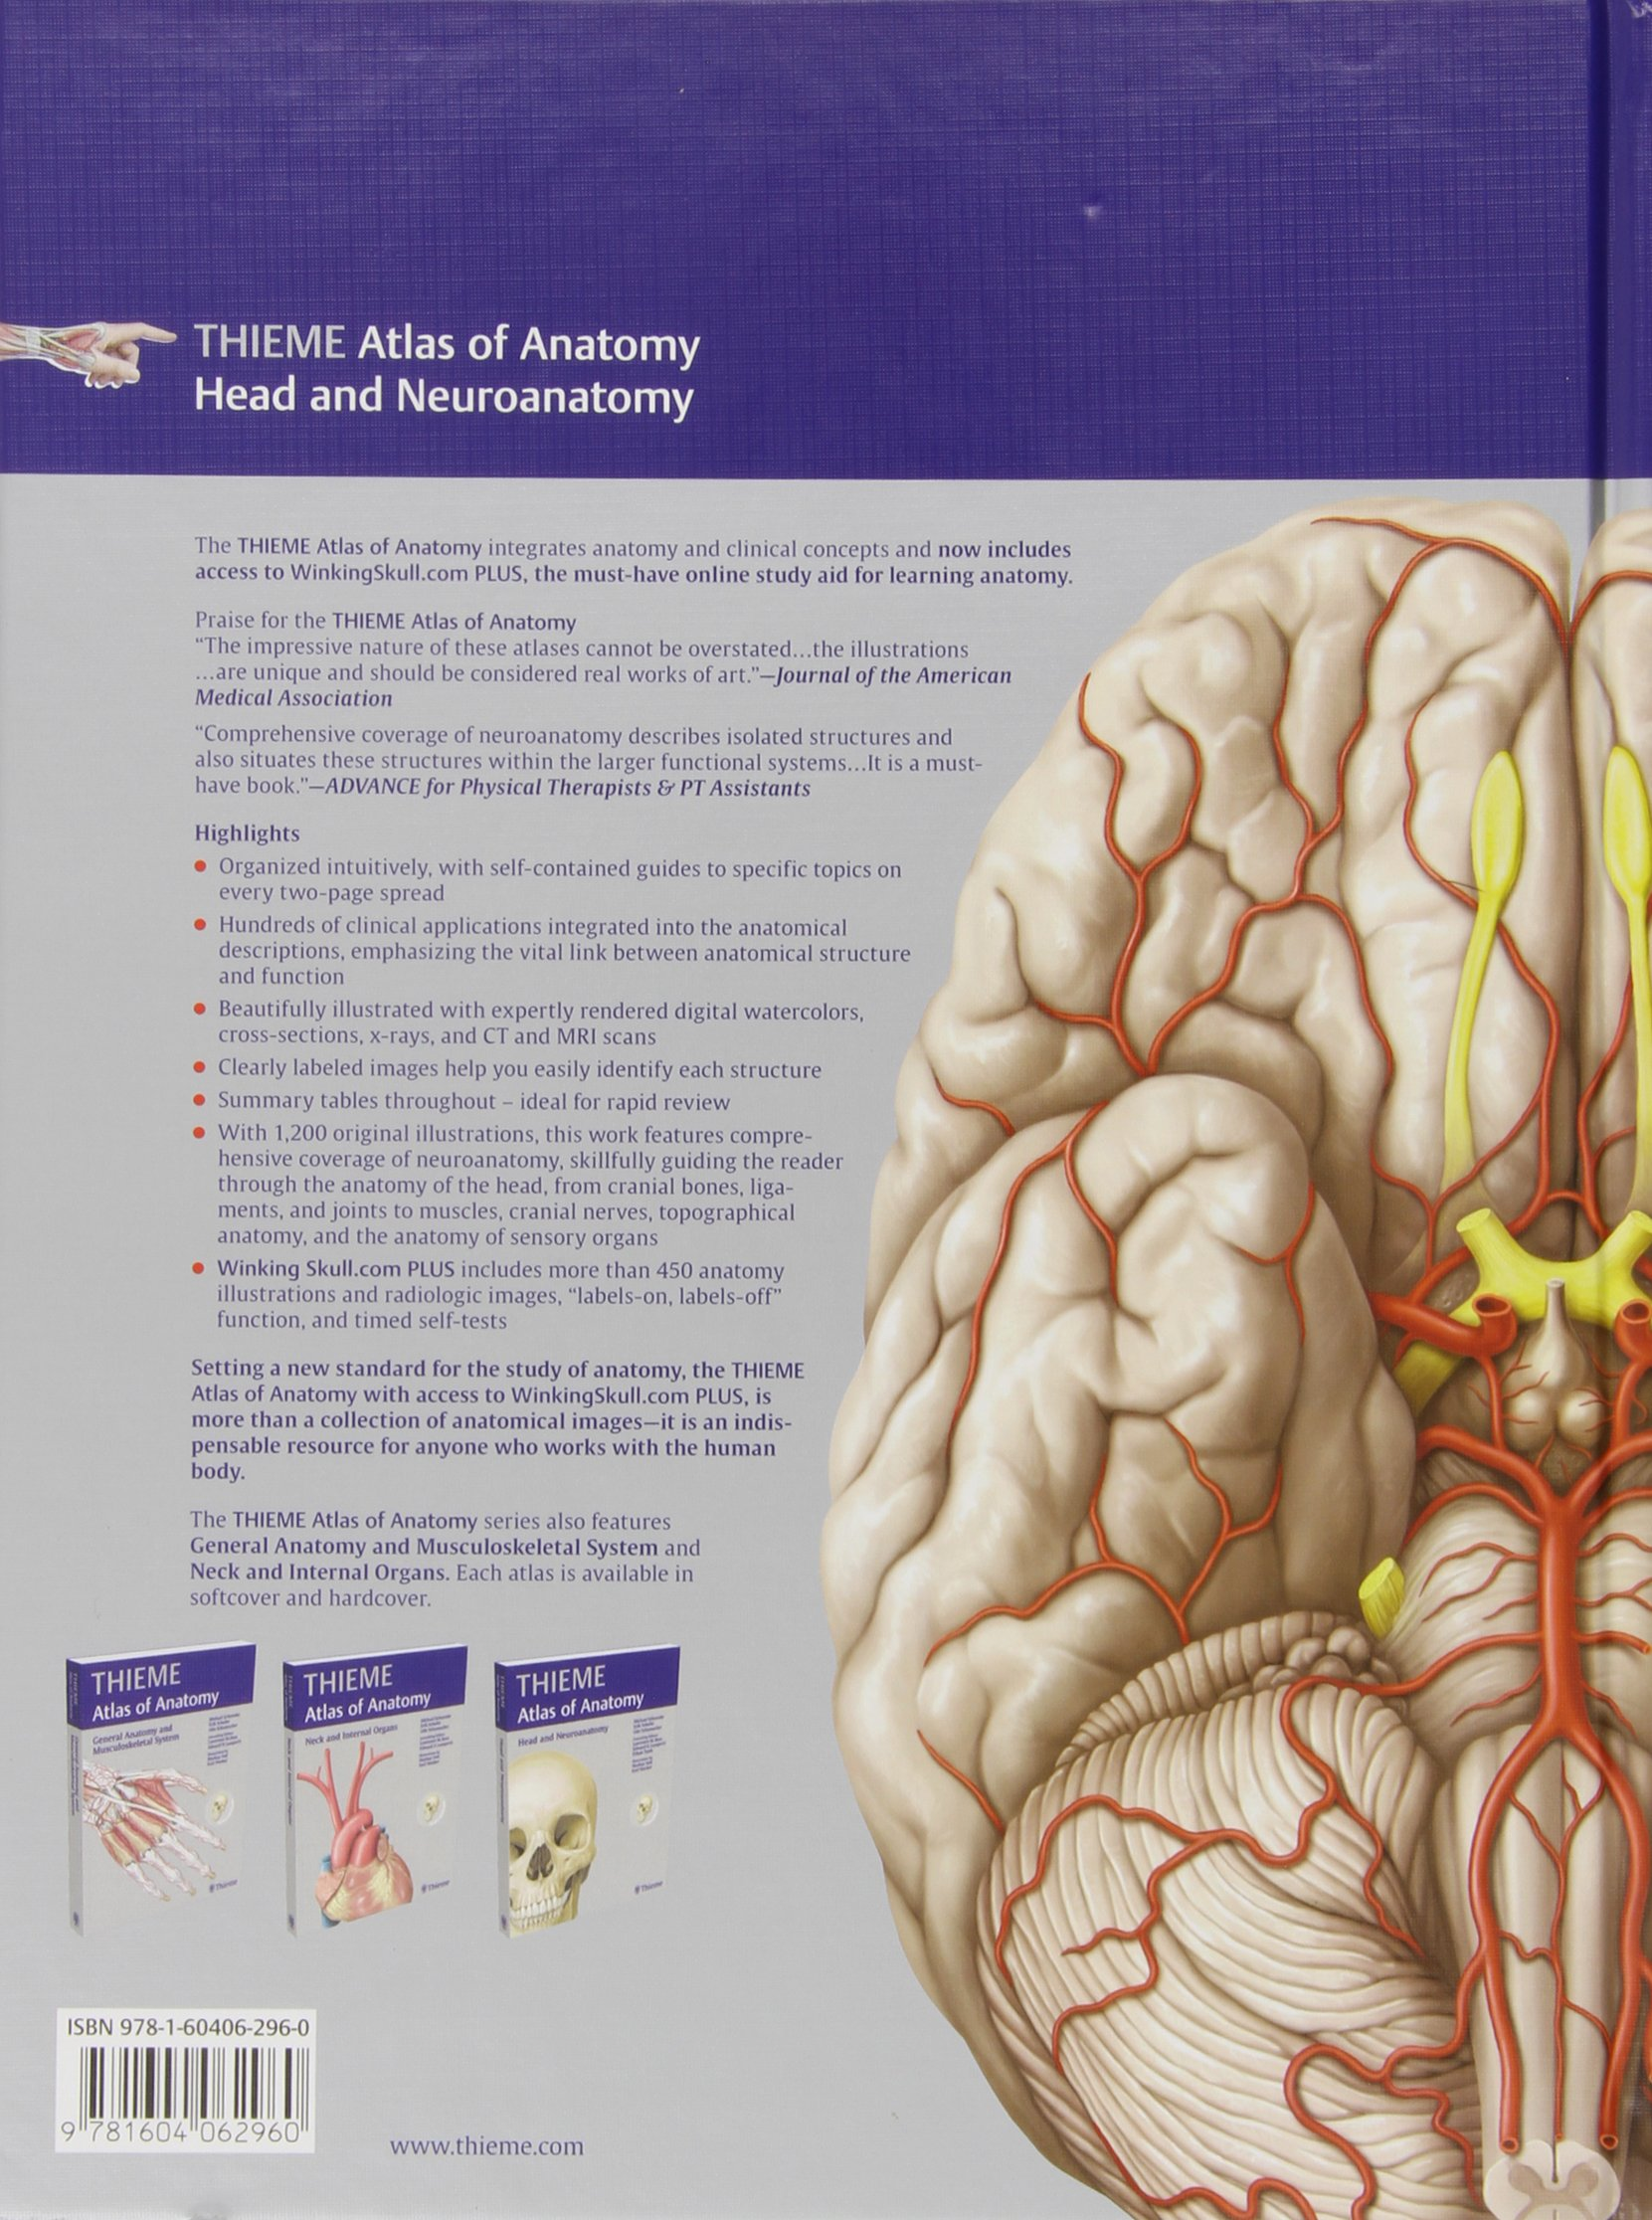 Head and Neuroanatomy Thieme Atlas of Anatomy : With Scratch Code ...